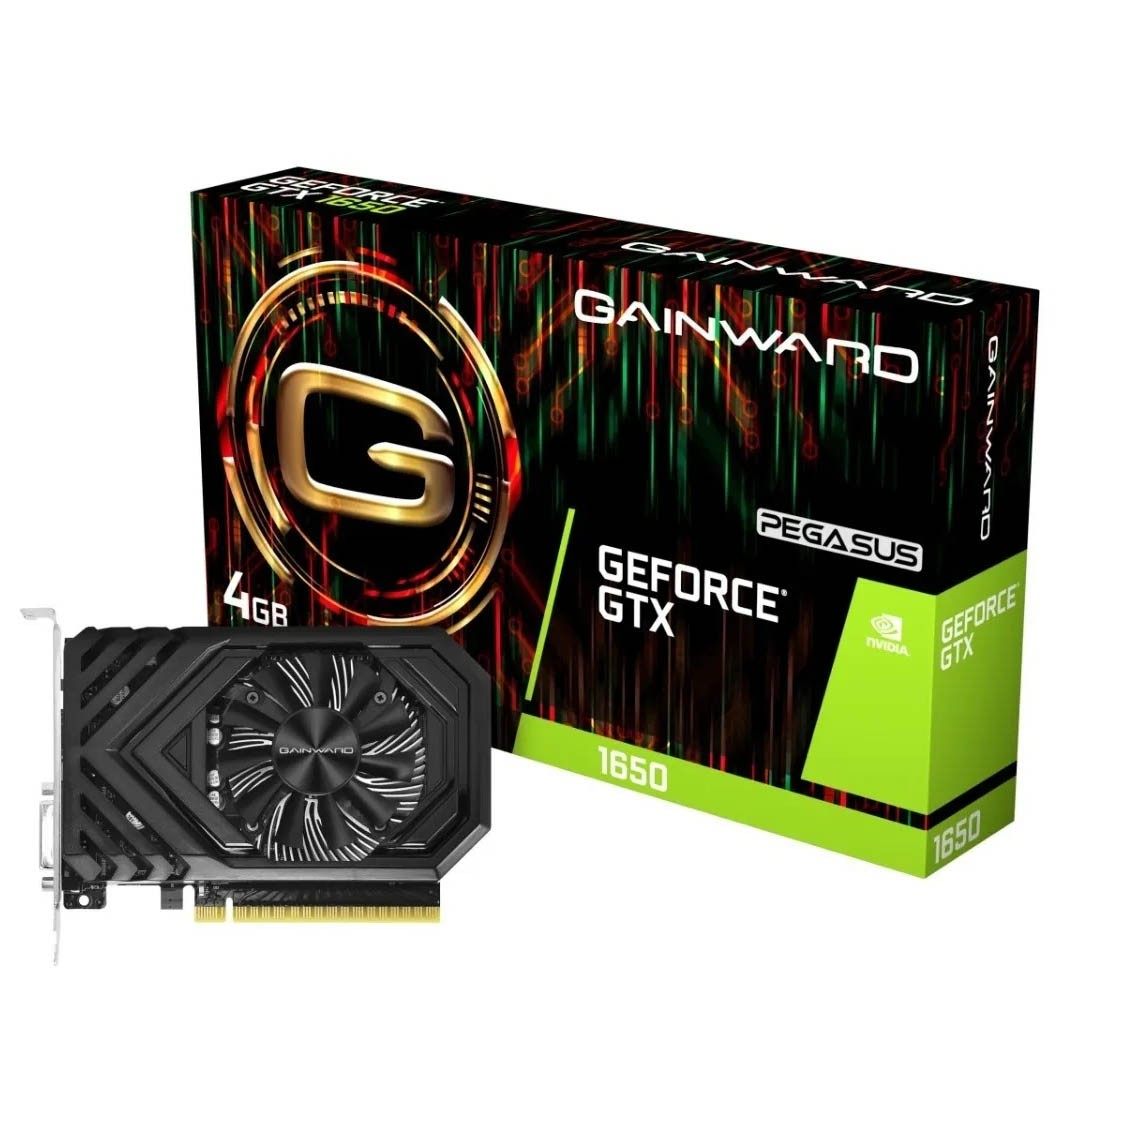 Placa De Video Gtx 1650 4gb Gainward Pegasus G5 Nvidia - NE51650006G1-1170F